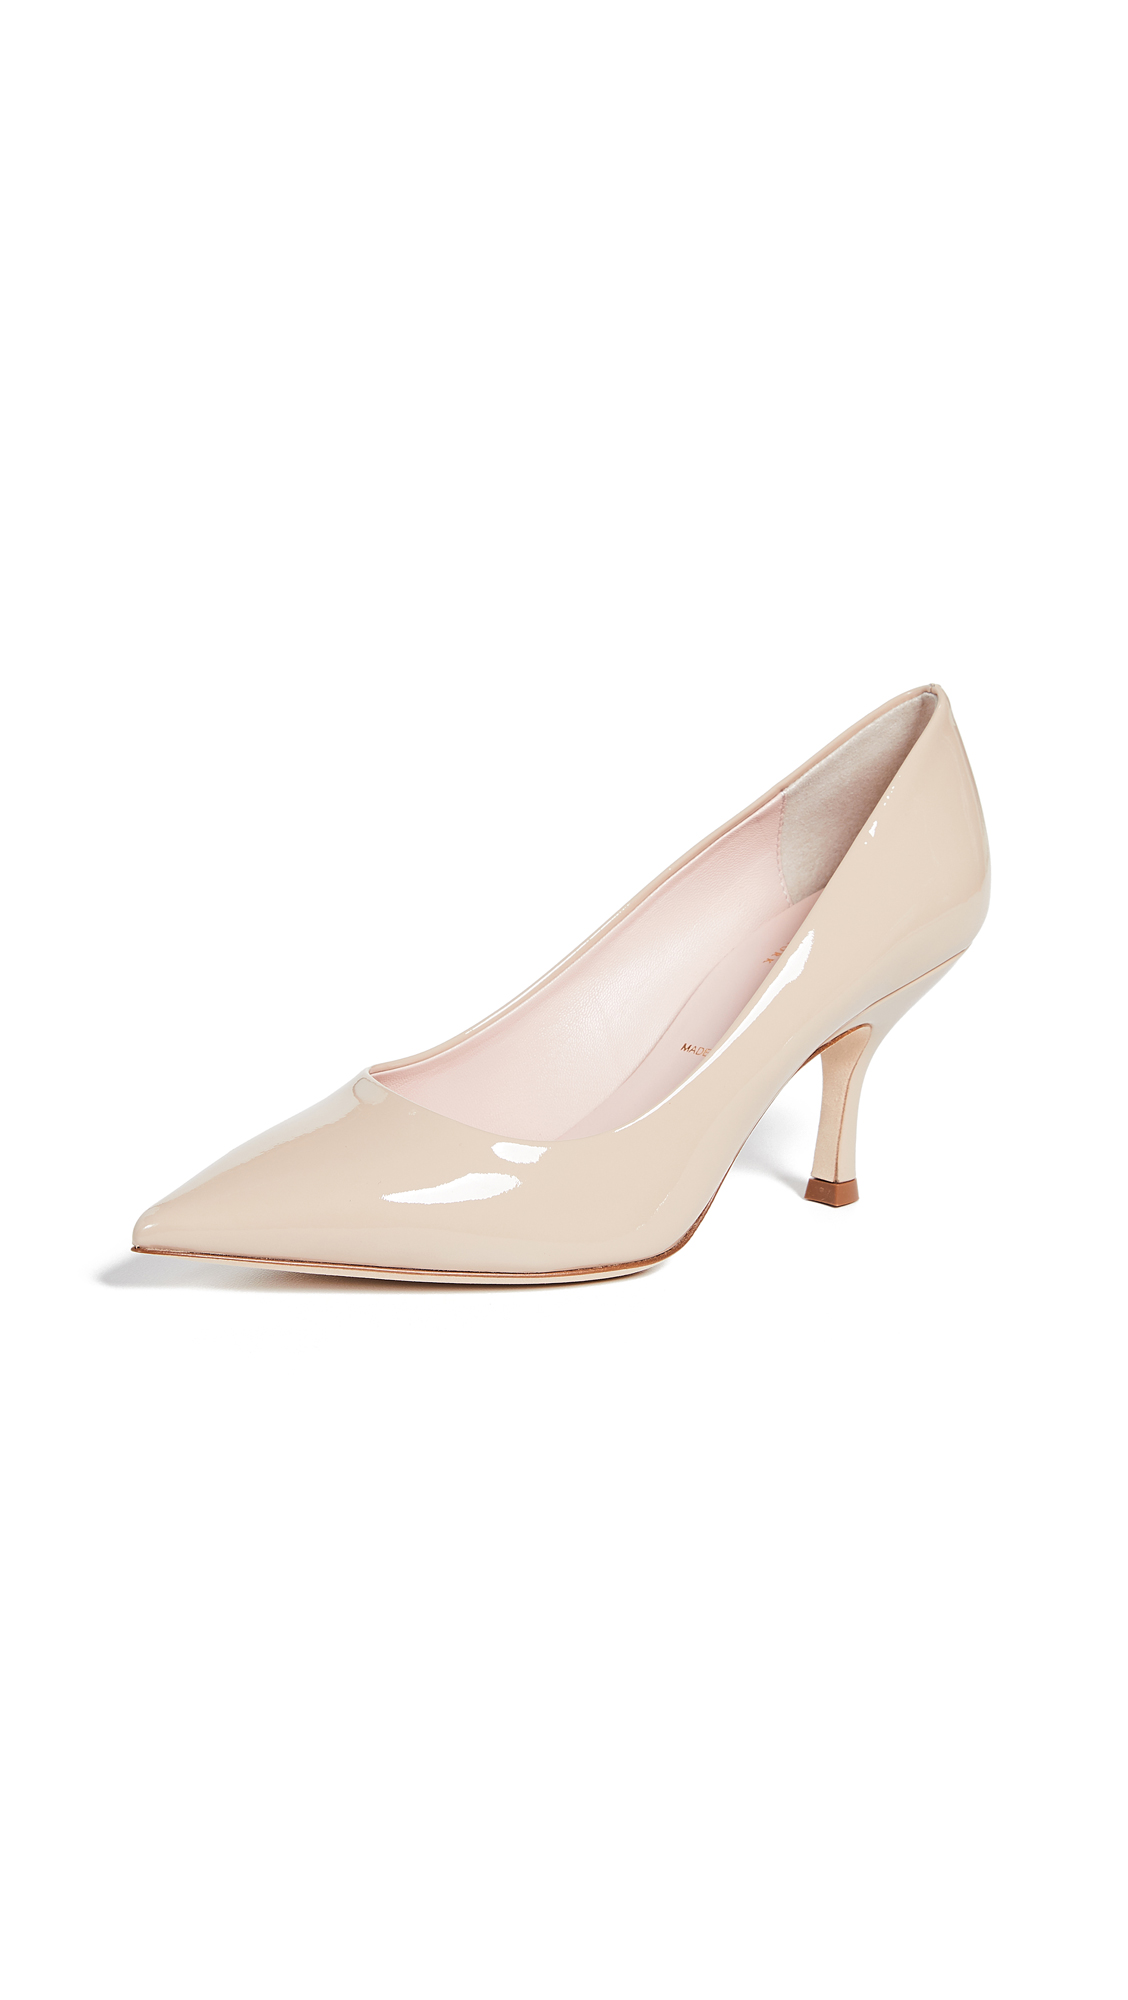 Kate Spade New York Sonia Point Toe Pumps - Powder